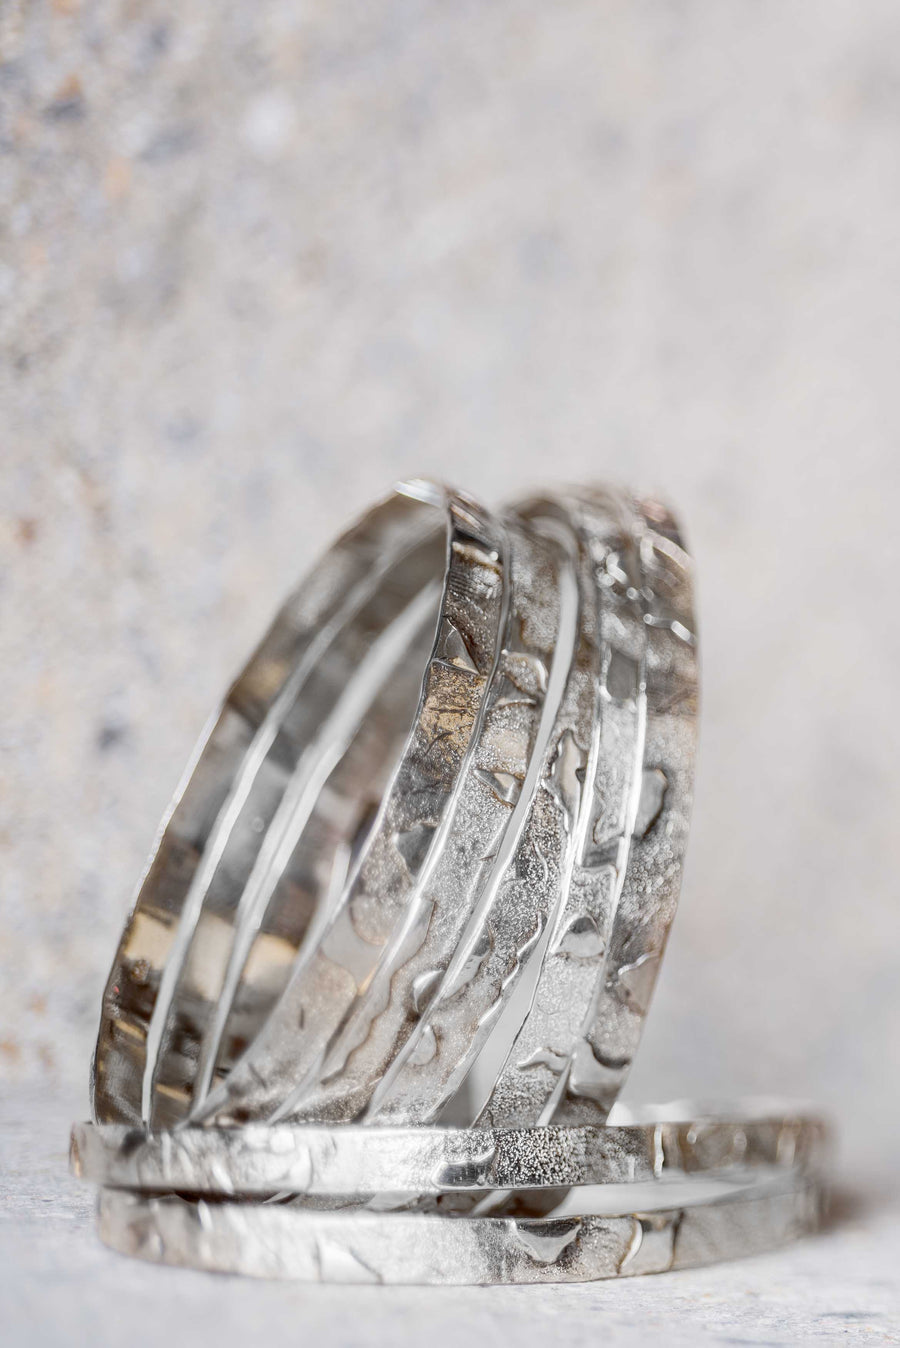 'The Gathering' Silver Bangles - Nous Wanderlust Stories